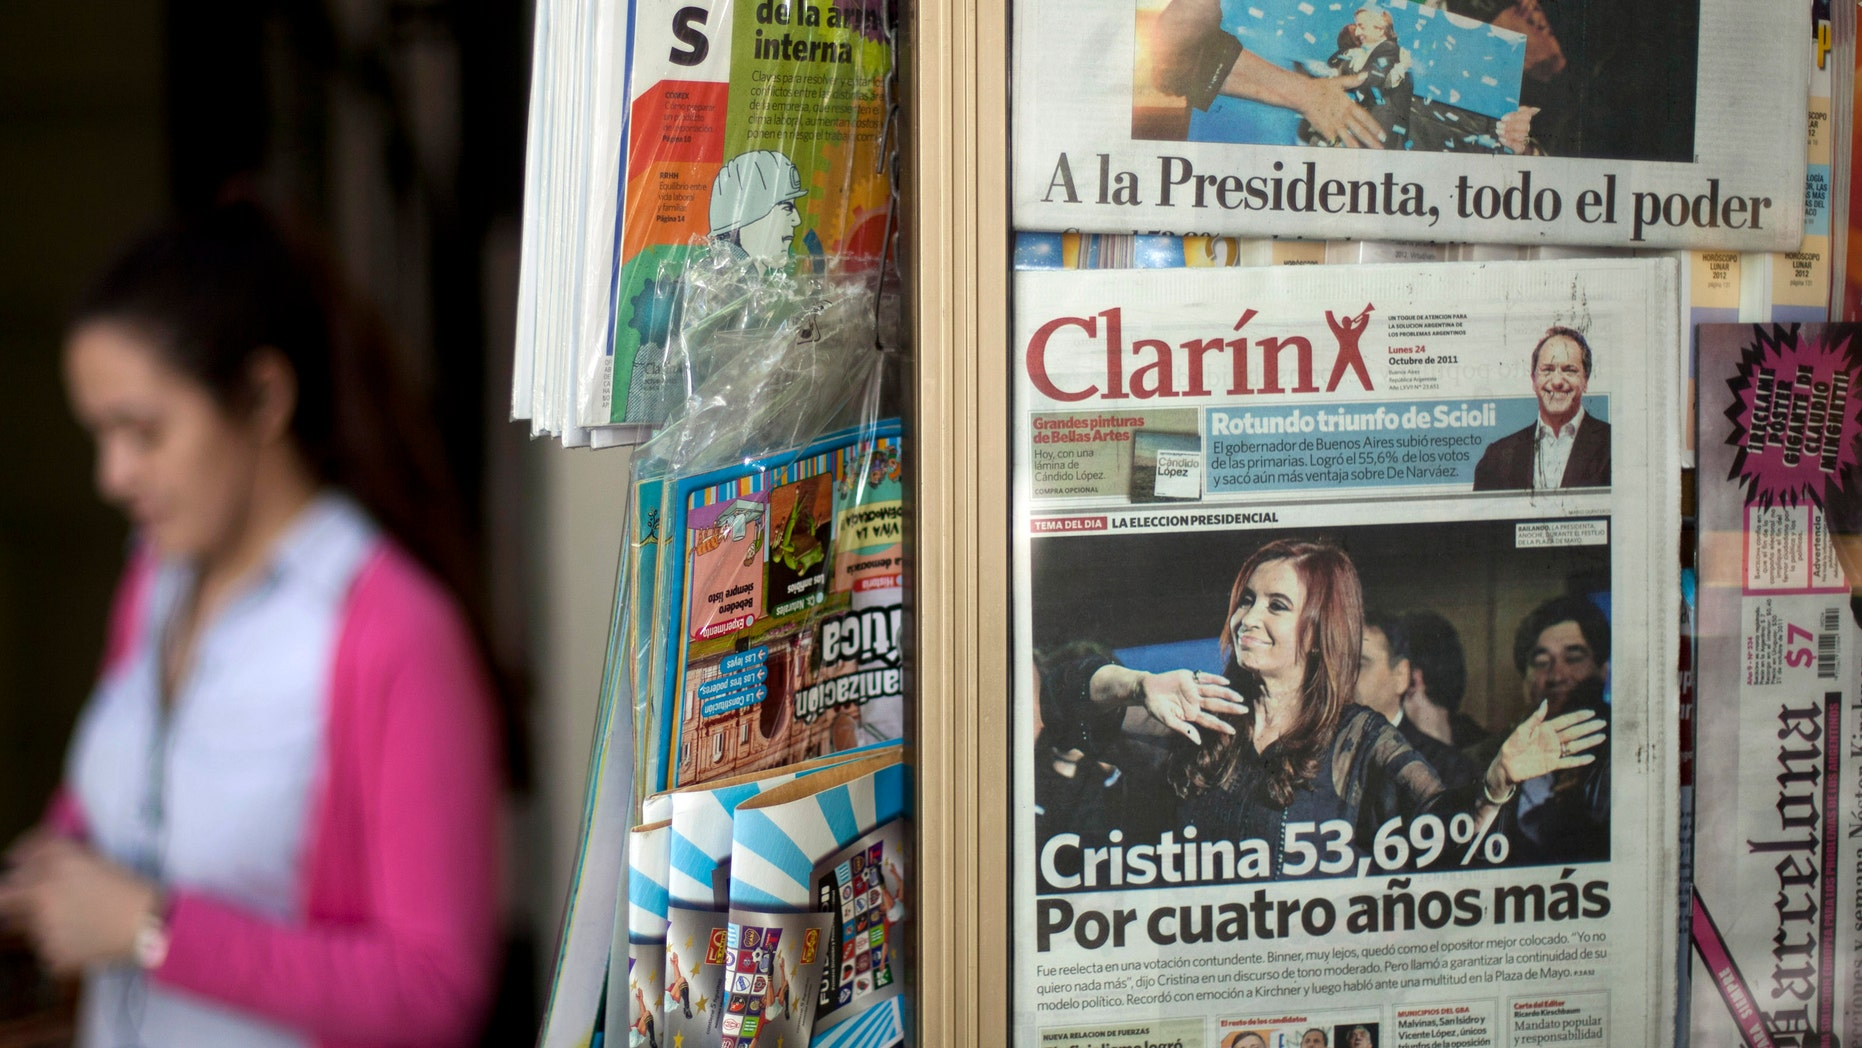 FILE - In this Oct. 24, 2011 file photo, a woman walks by a newspaper stand that displays Argentina's largest circulating daily newspaper the Clarin in Buenos Aires, Argentina. Argentinas government on Saturday, Sept. 22, 2012 gave one of its leading media critics, Grupo Clarin, a Dec. 7 deadline to sell off most of its broadcast stations, saying 7D will stand for diversity and democracy as the day when media monopolies will no longer be able to put themselves above the law.  (AP Photo/Victor R. Caivano, File)